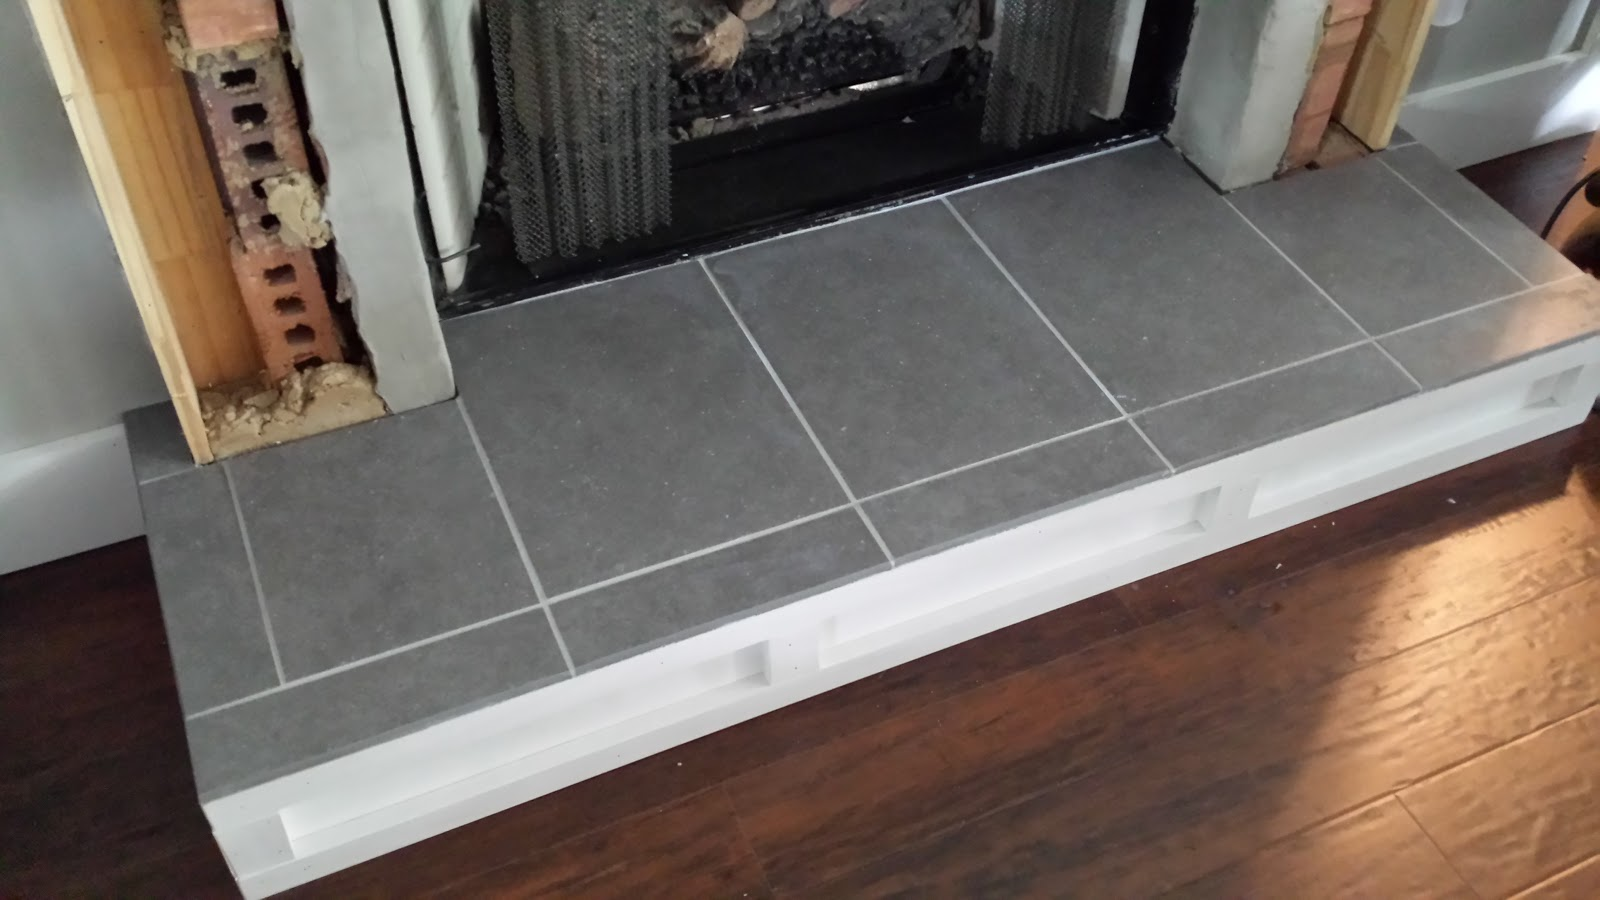 Deck our home fireplace tutorial 2 installing hearth tile i did grout between the tile and the black fireplace insert but didnt worry about the area where i would be installing mosaic tile and wood dailygadgetfo Choice Image